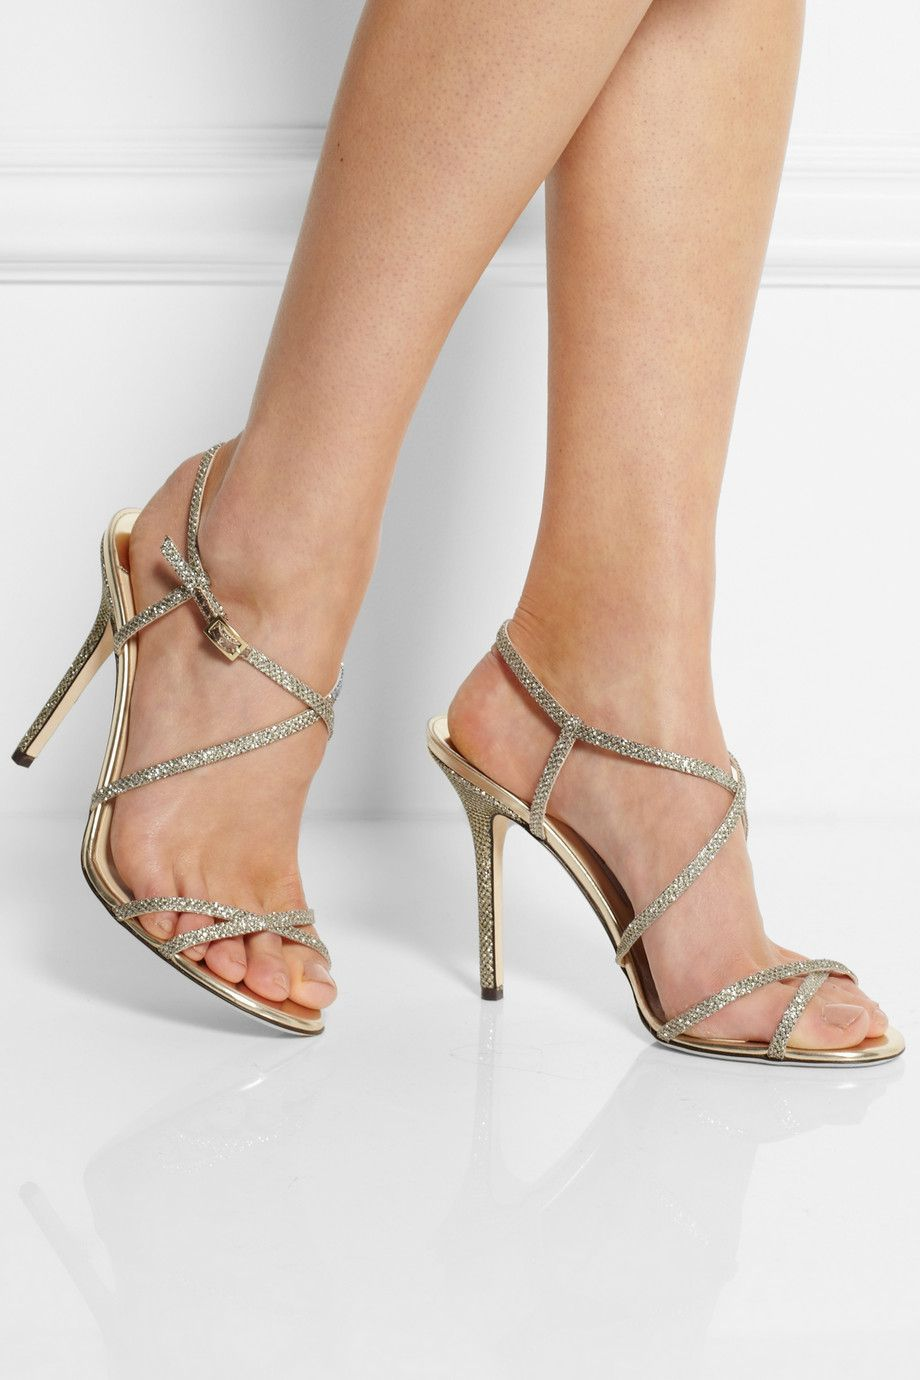 1157c2c95bf Editor s Pick  Jimmy Choo Wedding Shoes. To see more  http